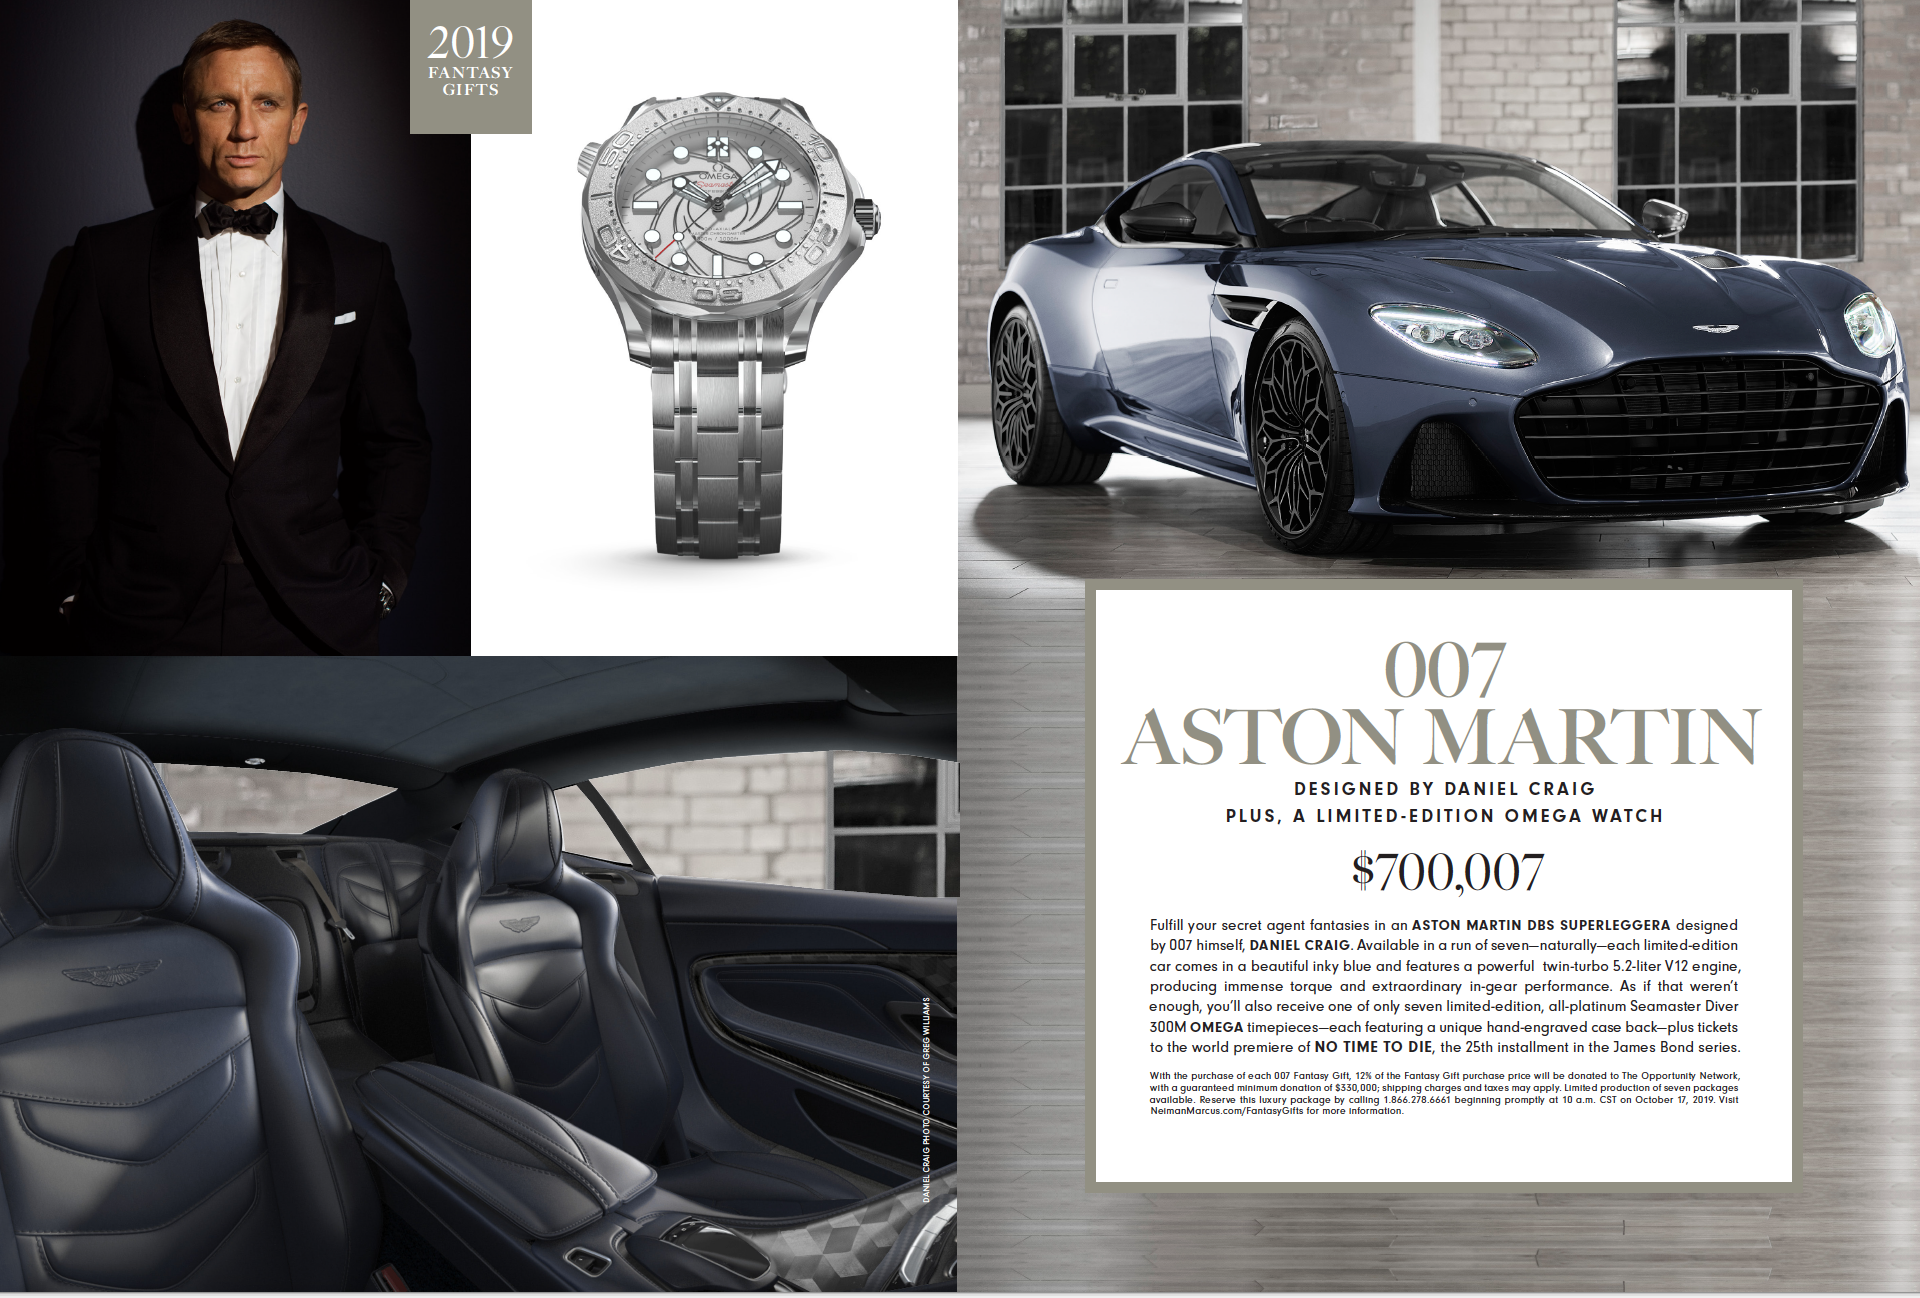 Neiman Marcus Luxury Christmas Gifts For 2020 James Bond–Themed Aston Martin DBS Makes '19 Neiman Marcus Catalog